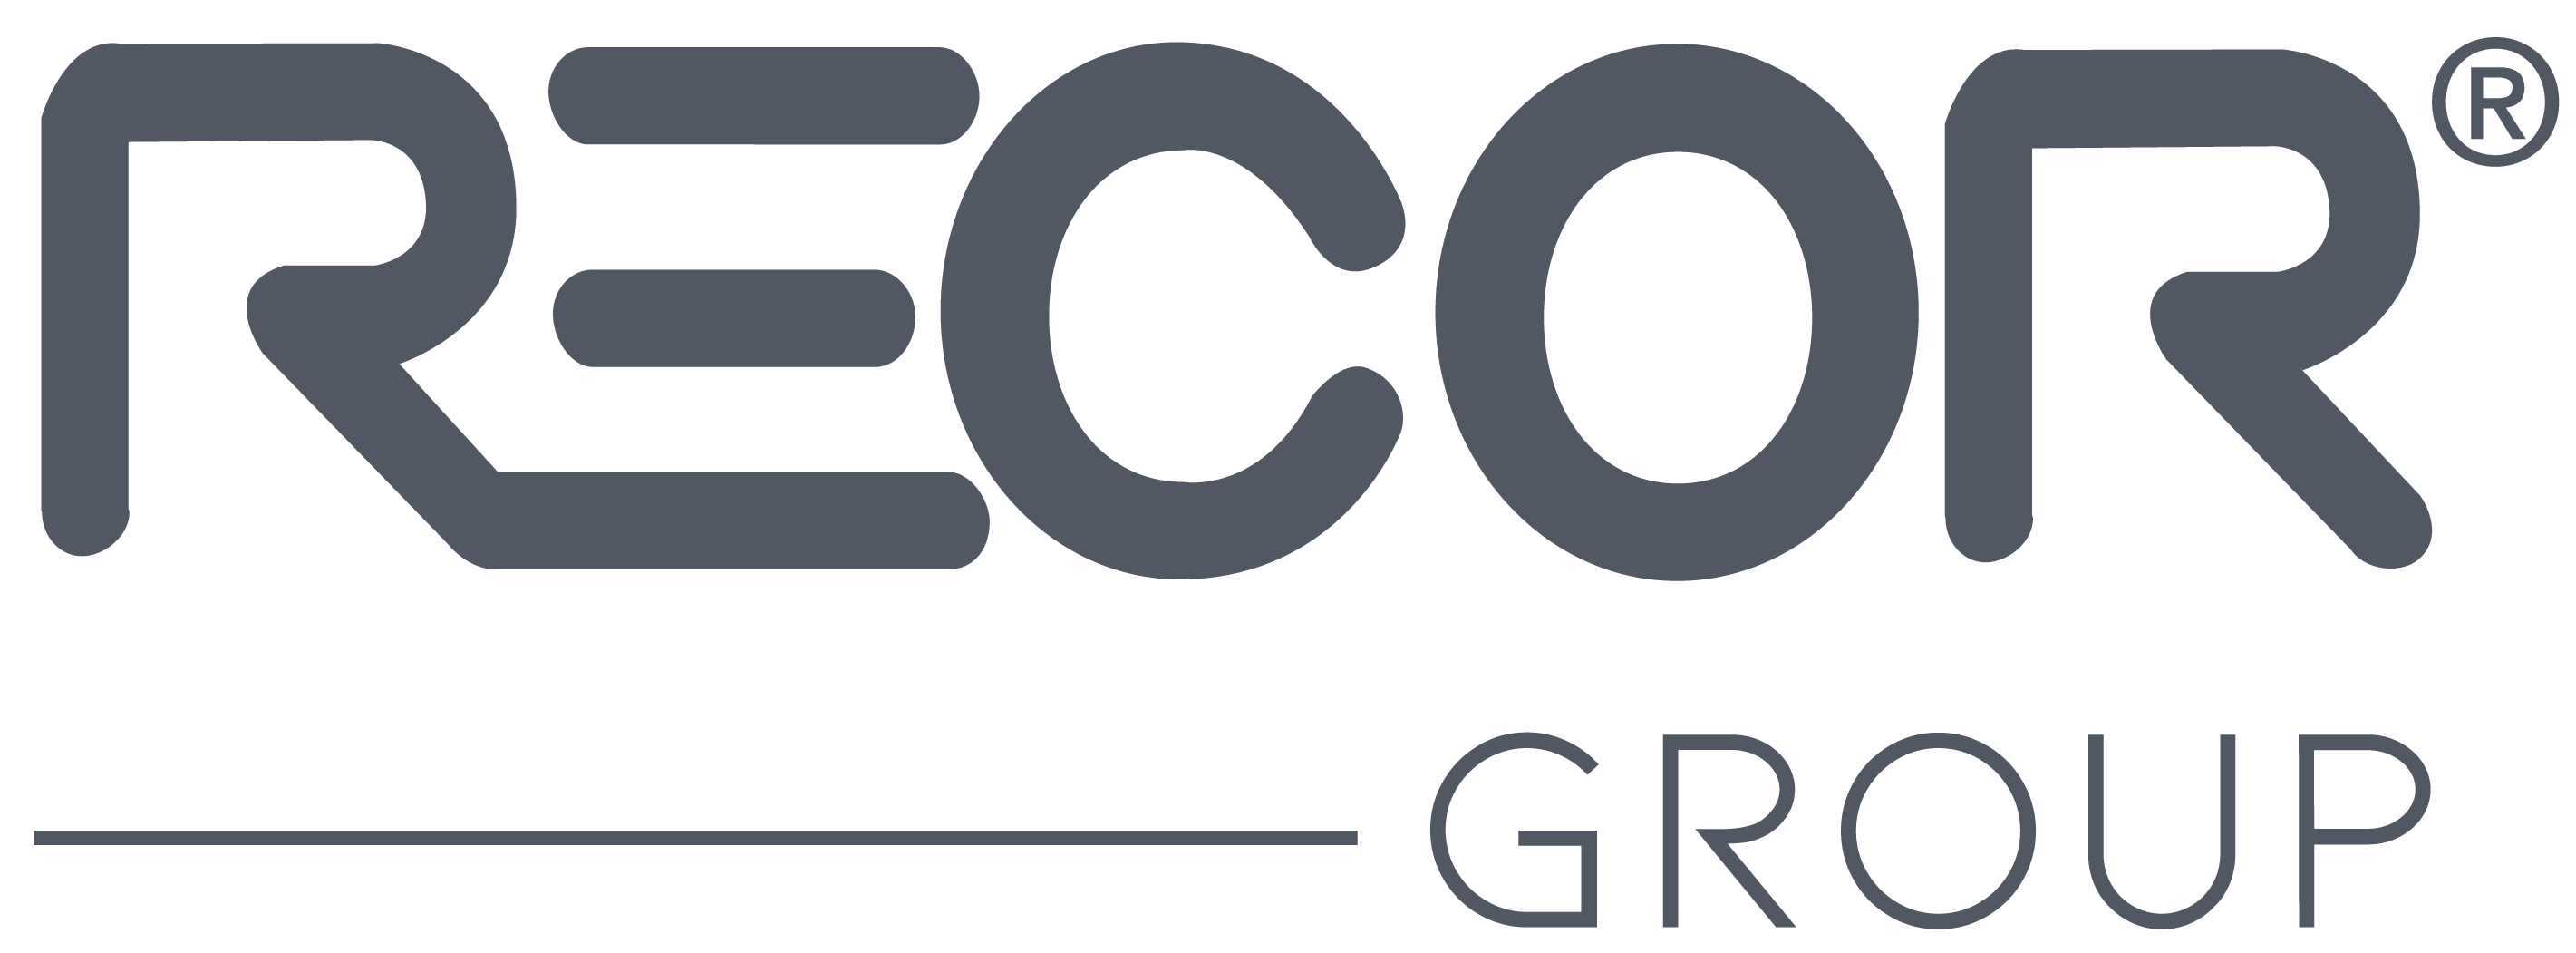 Recor Group N logo